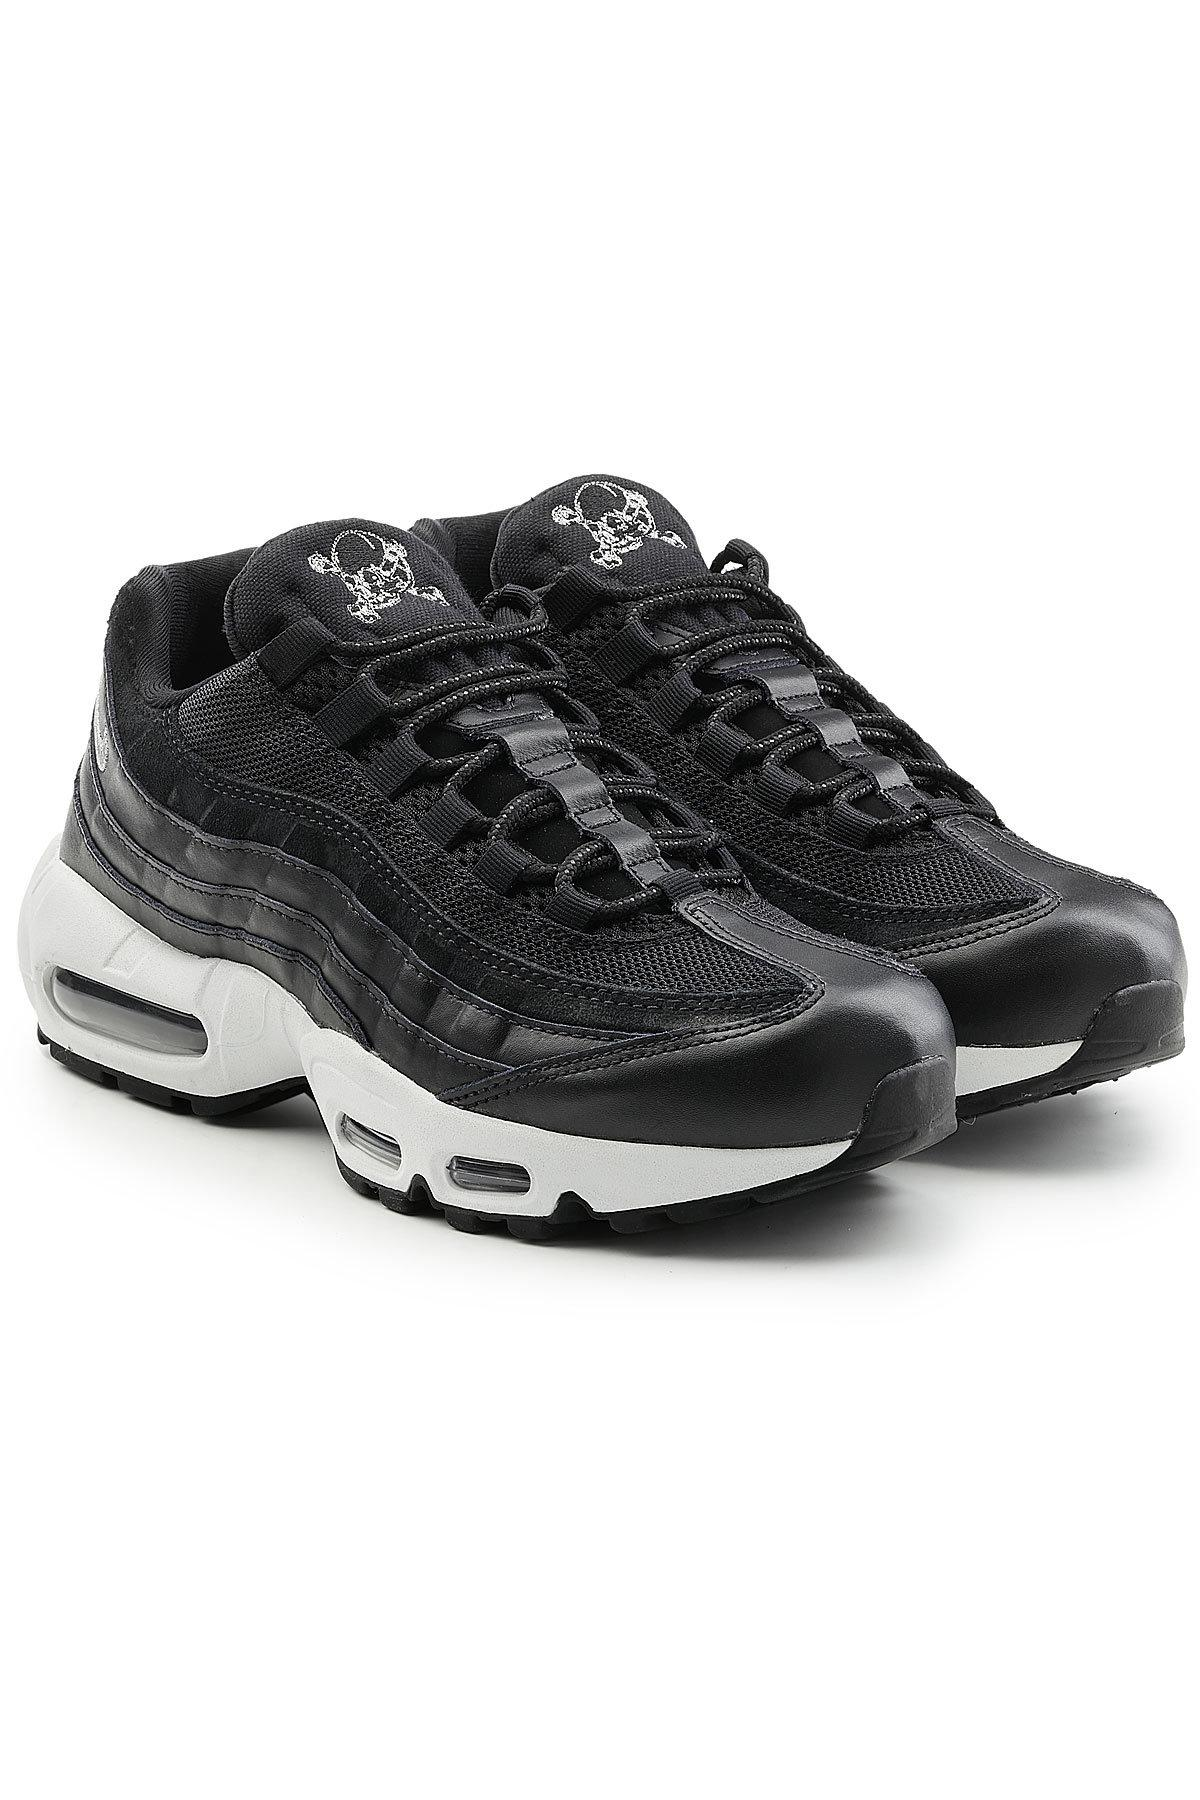 Nike Air Max 95 Premium Sneakers With Leather In Black